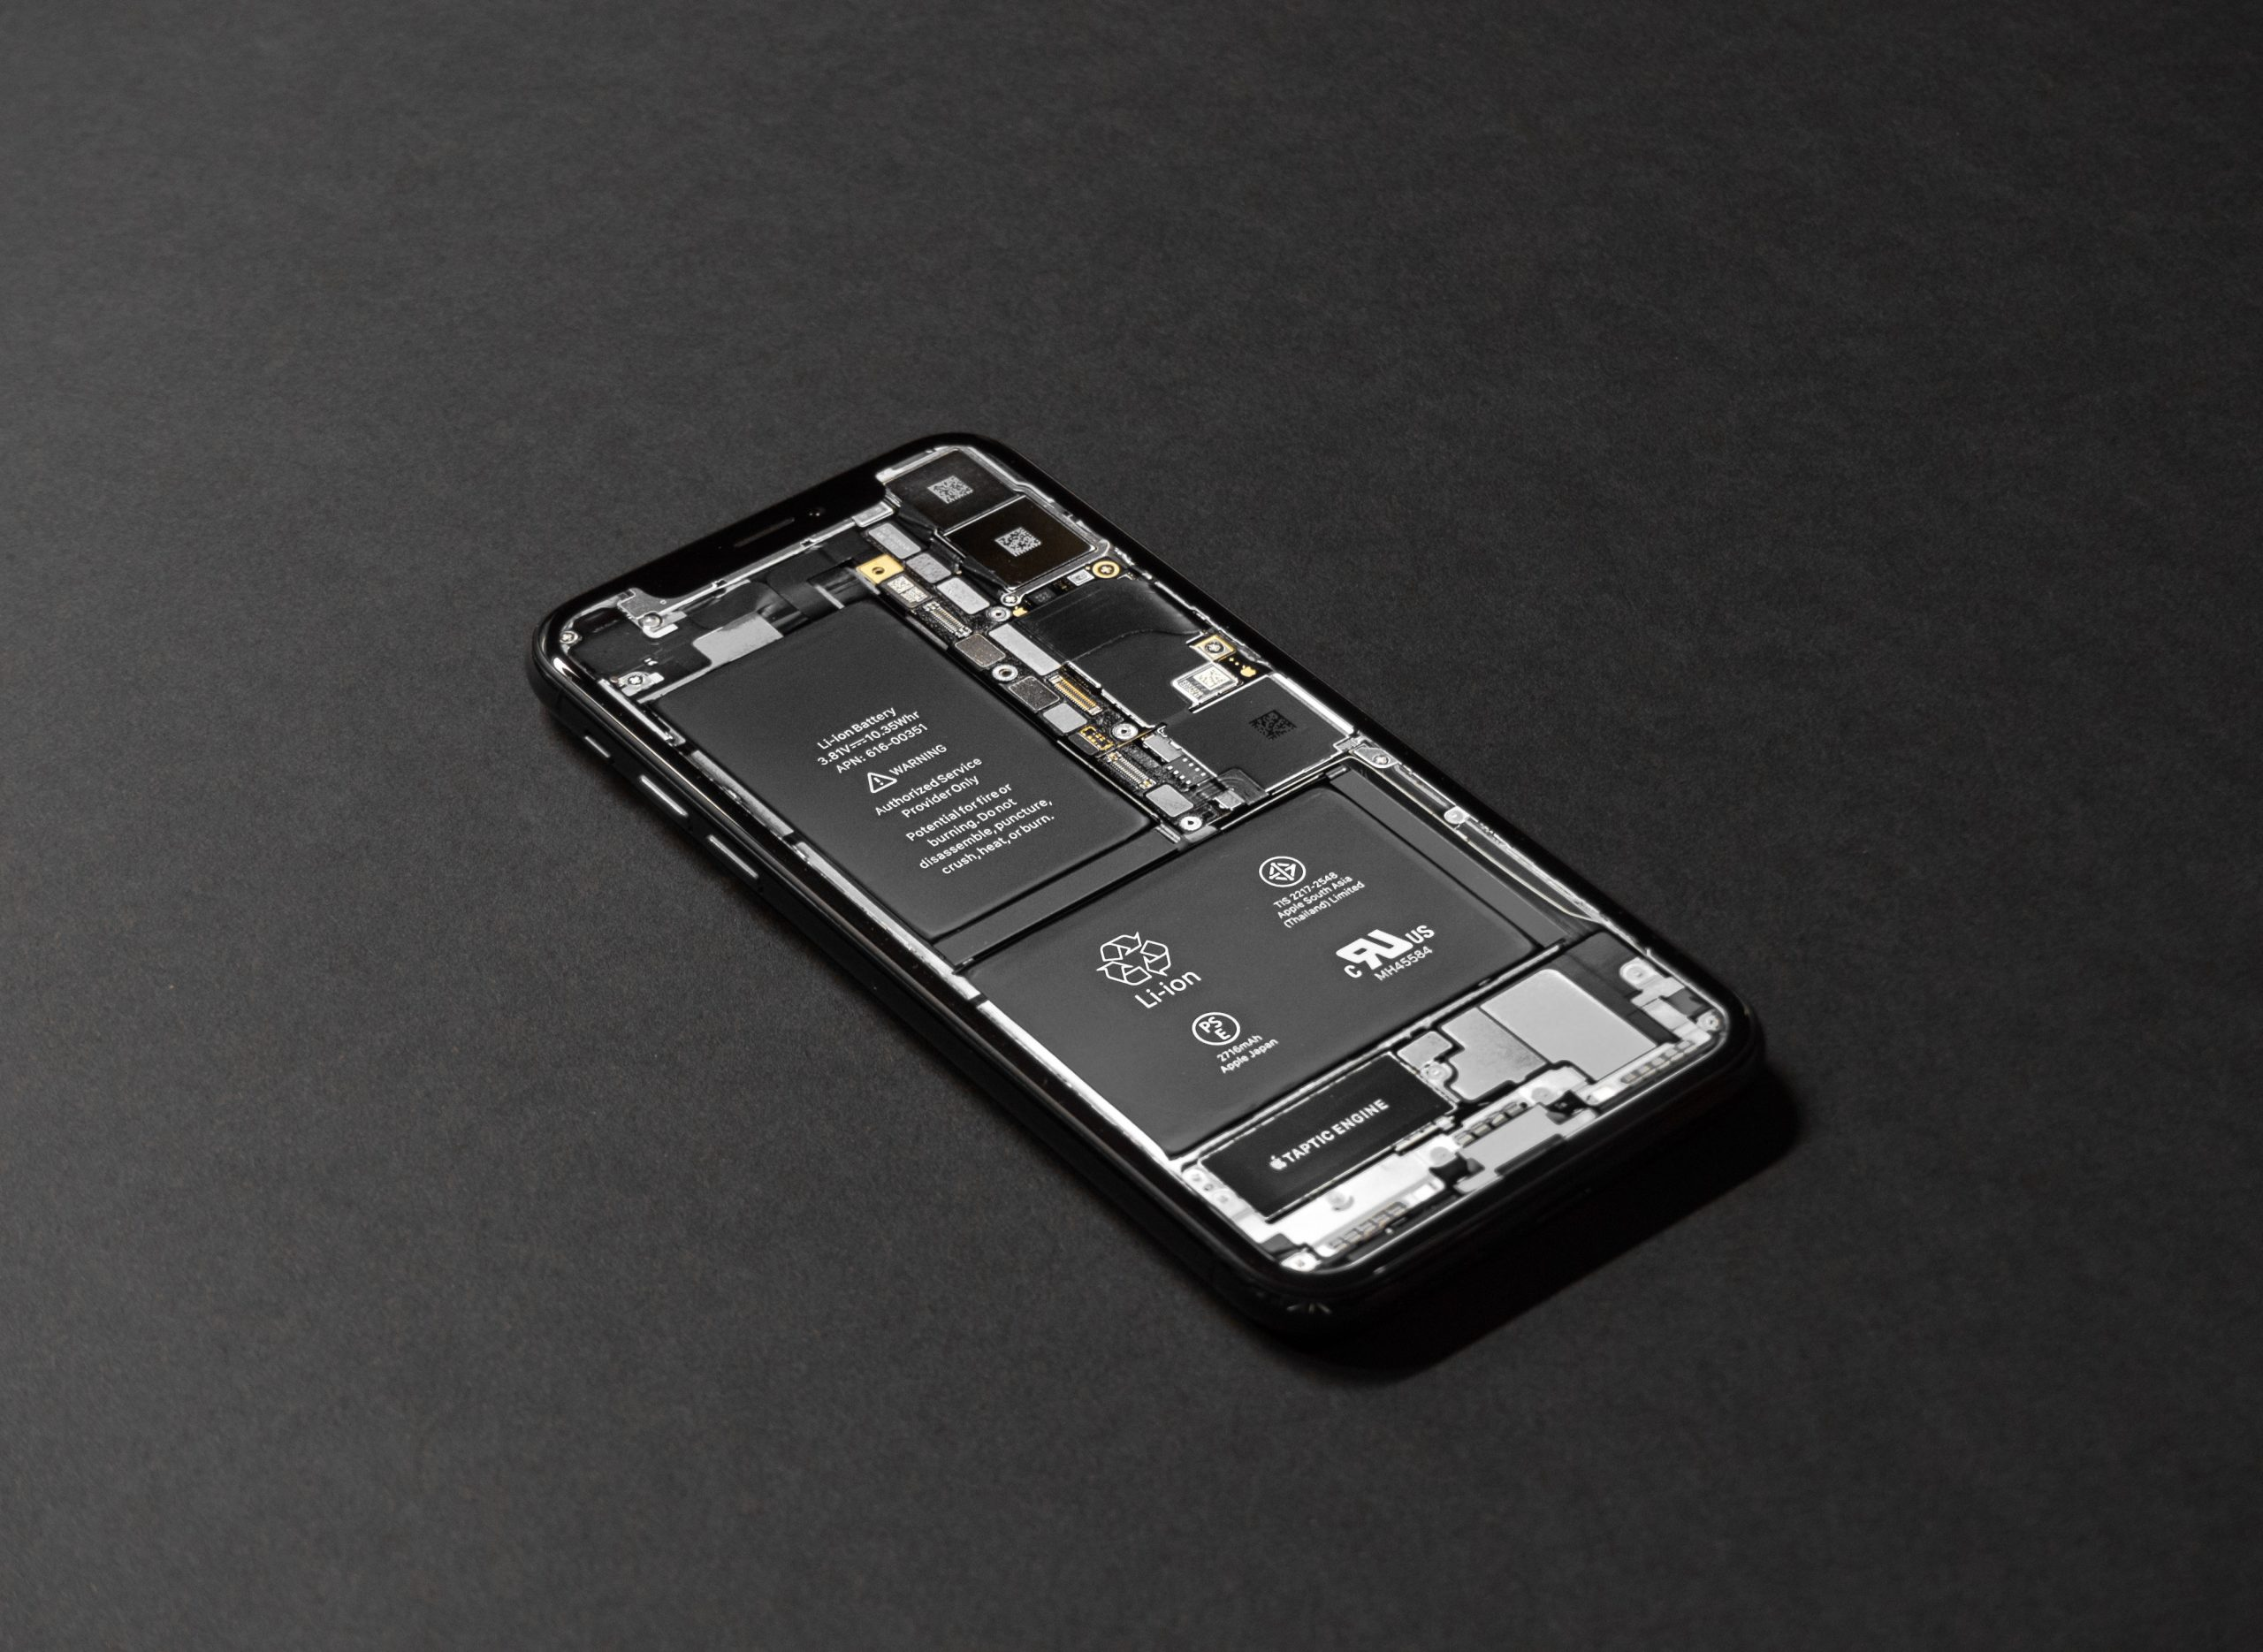 affordable mobile phone repair services